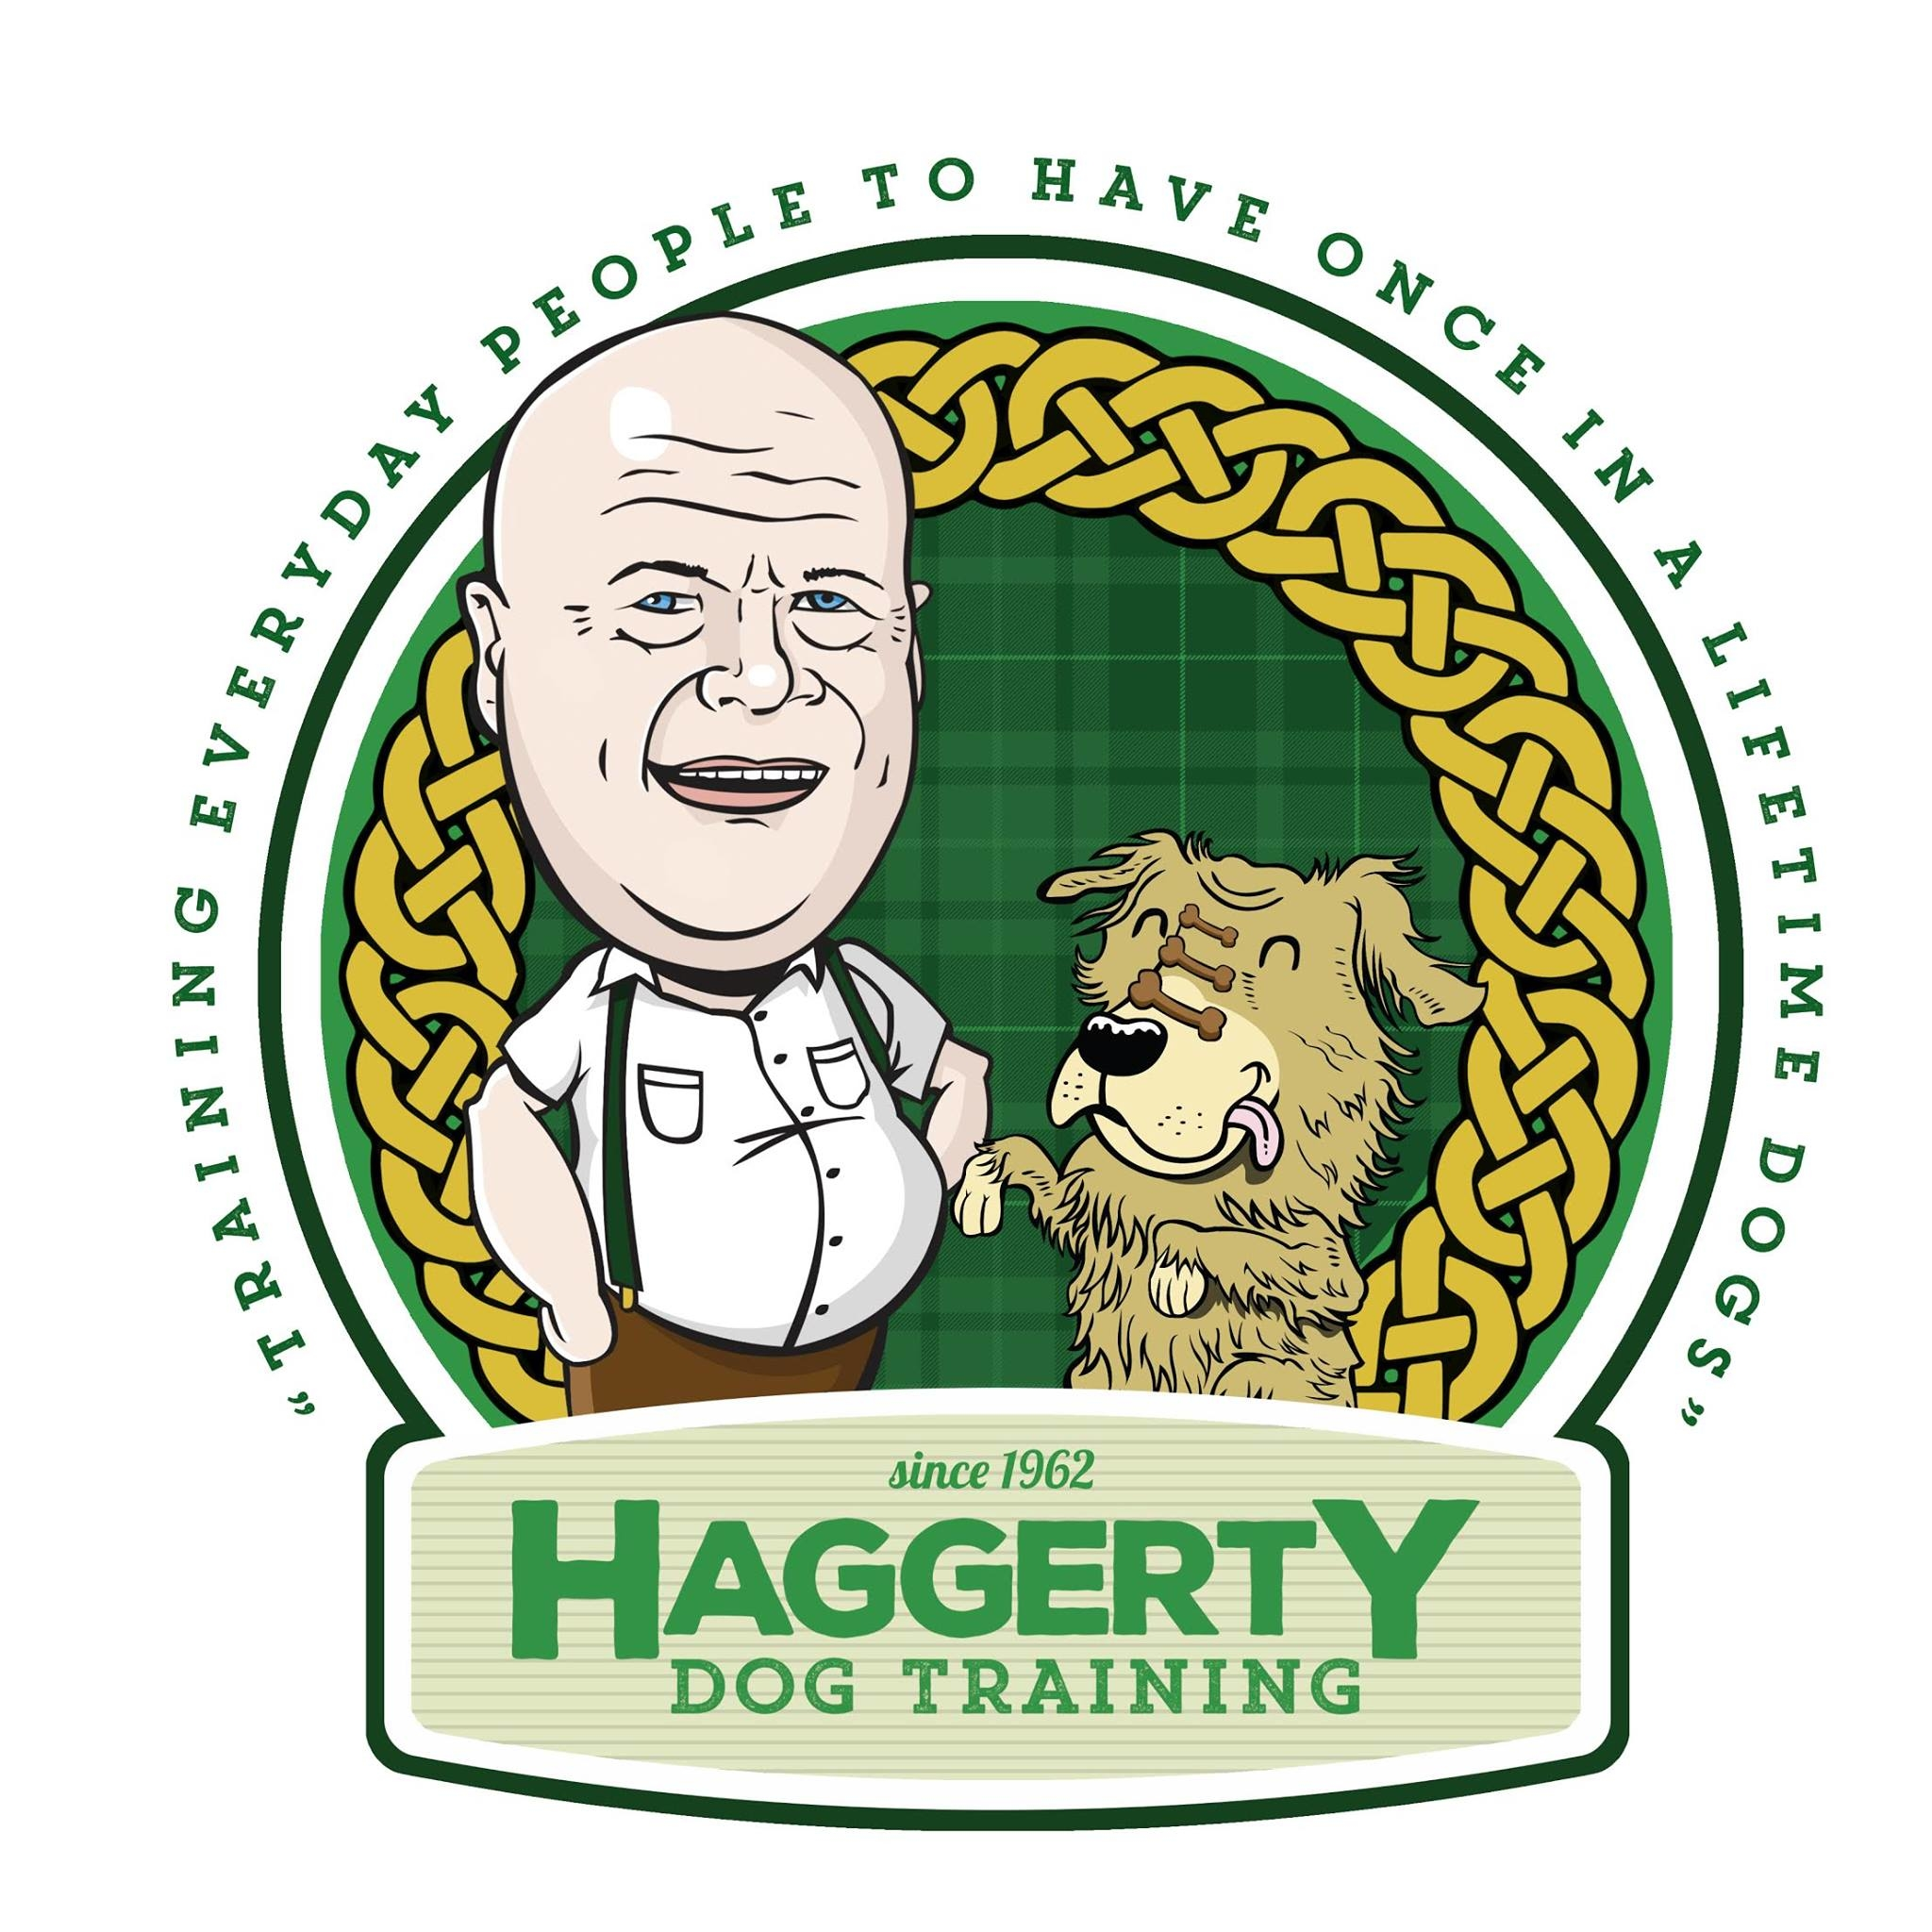 Haggerty Dog Training